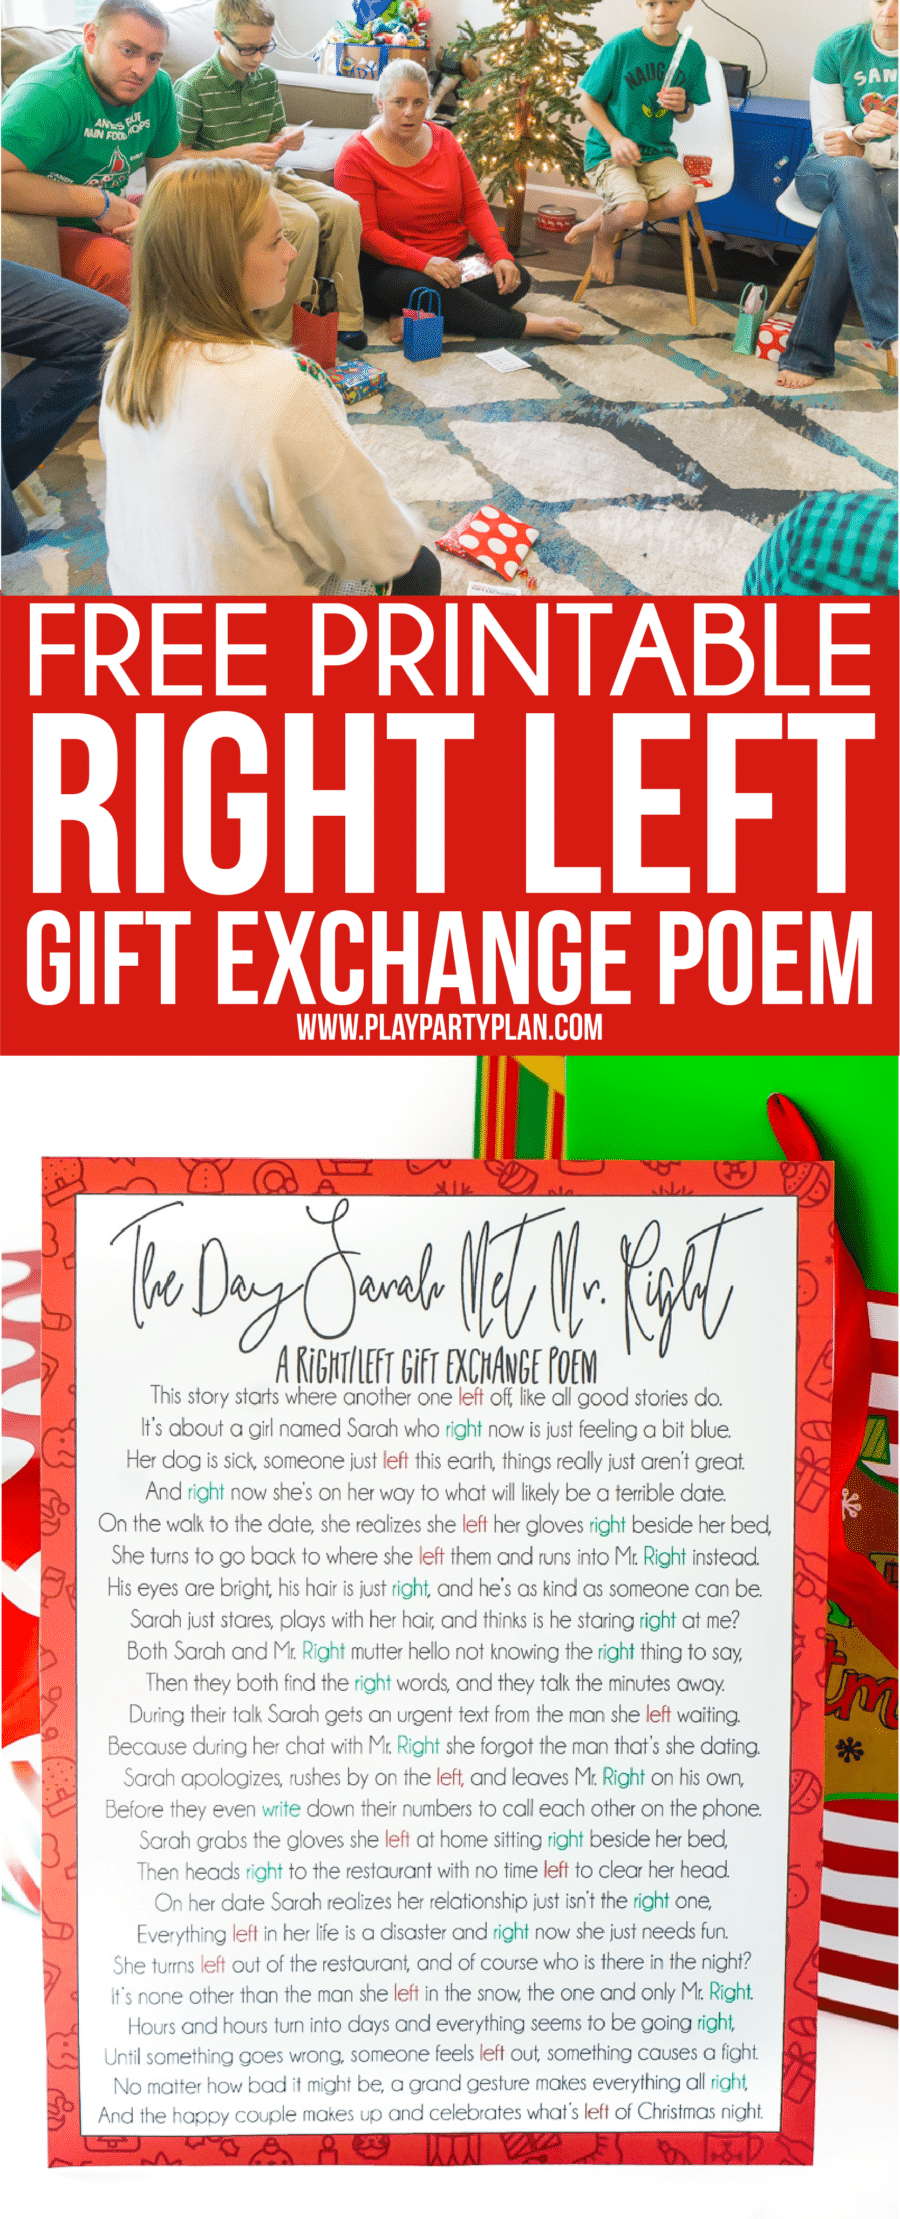 graphic about Christmas Left Right Game Printable called A Hilarious Still left Directly Xmas Poem Present Activity - Enjoy